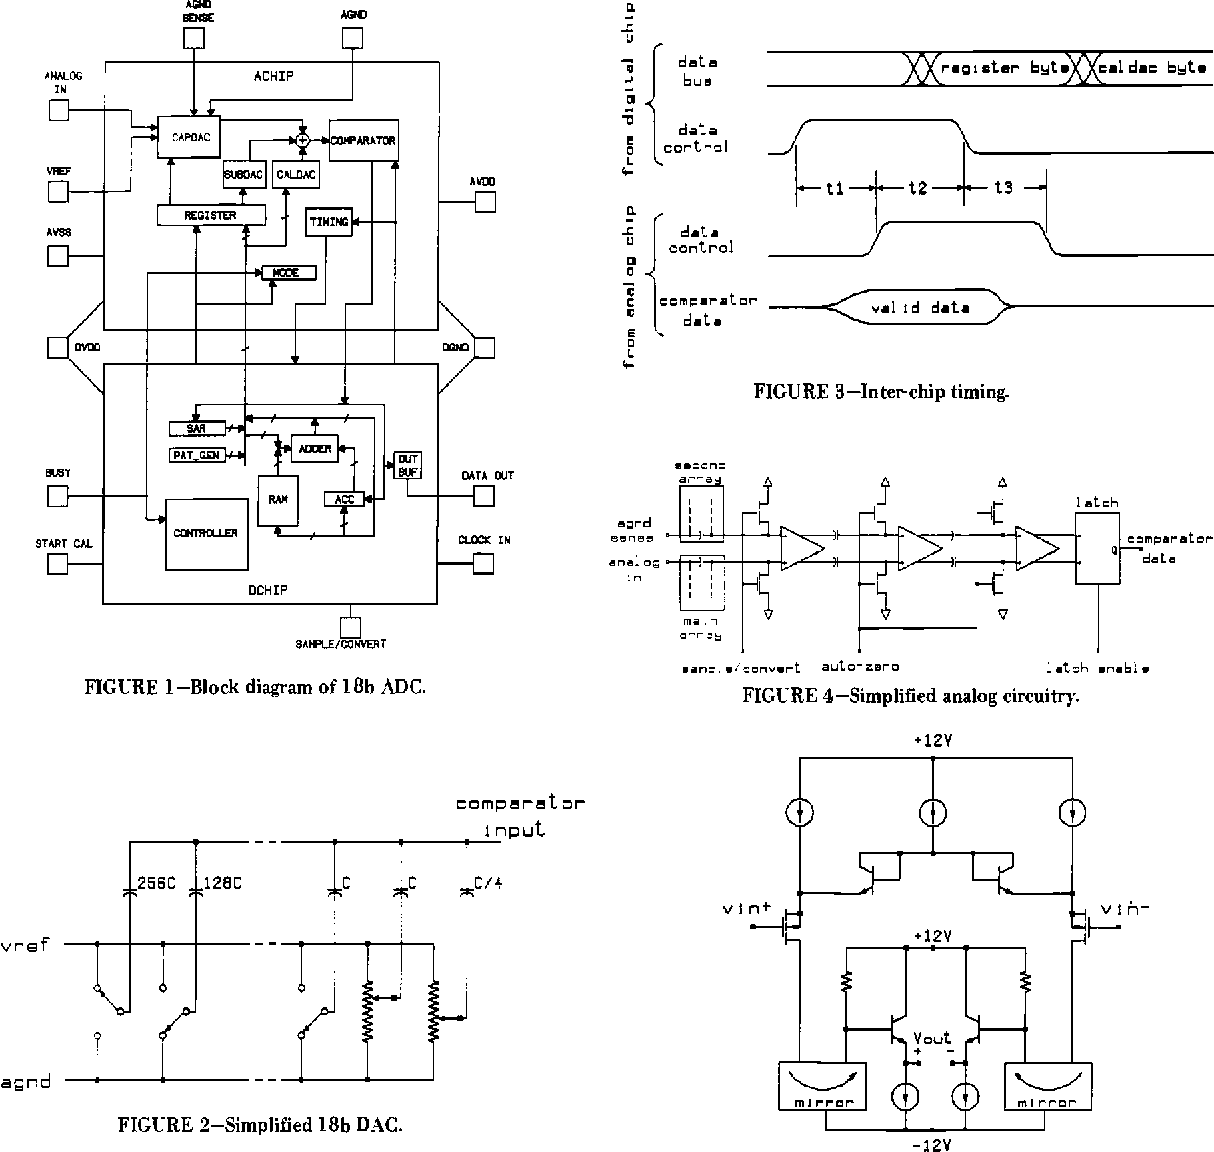 hight resolution of figure 1 block diagram of 18b adc